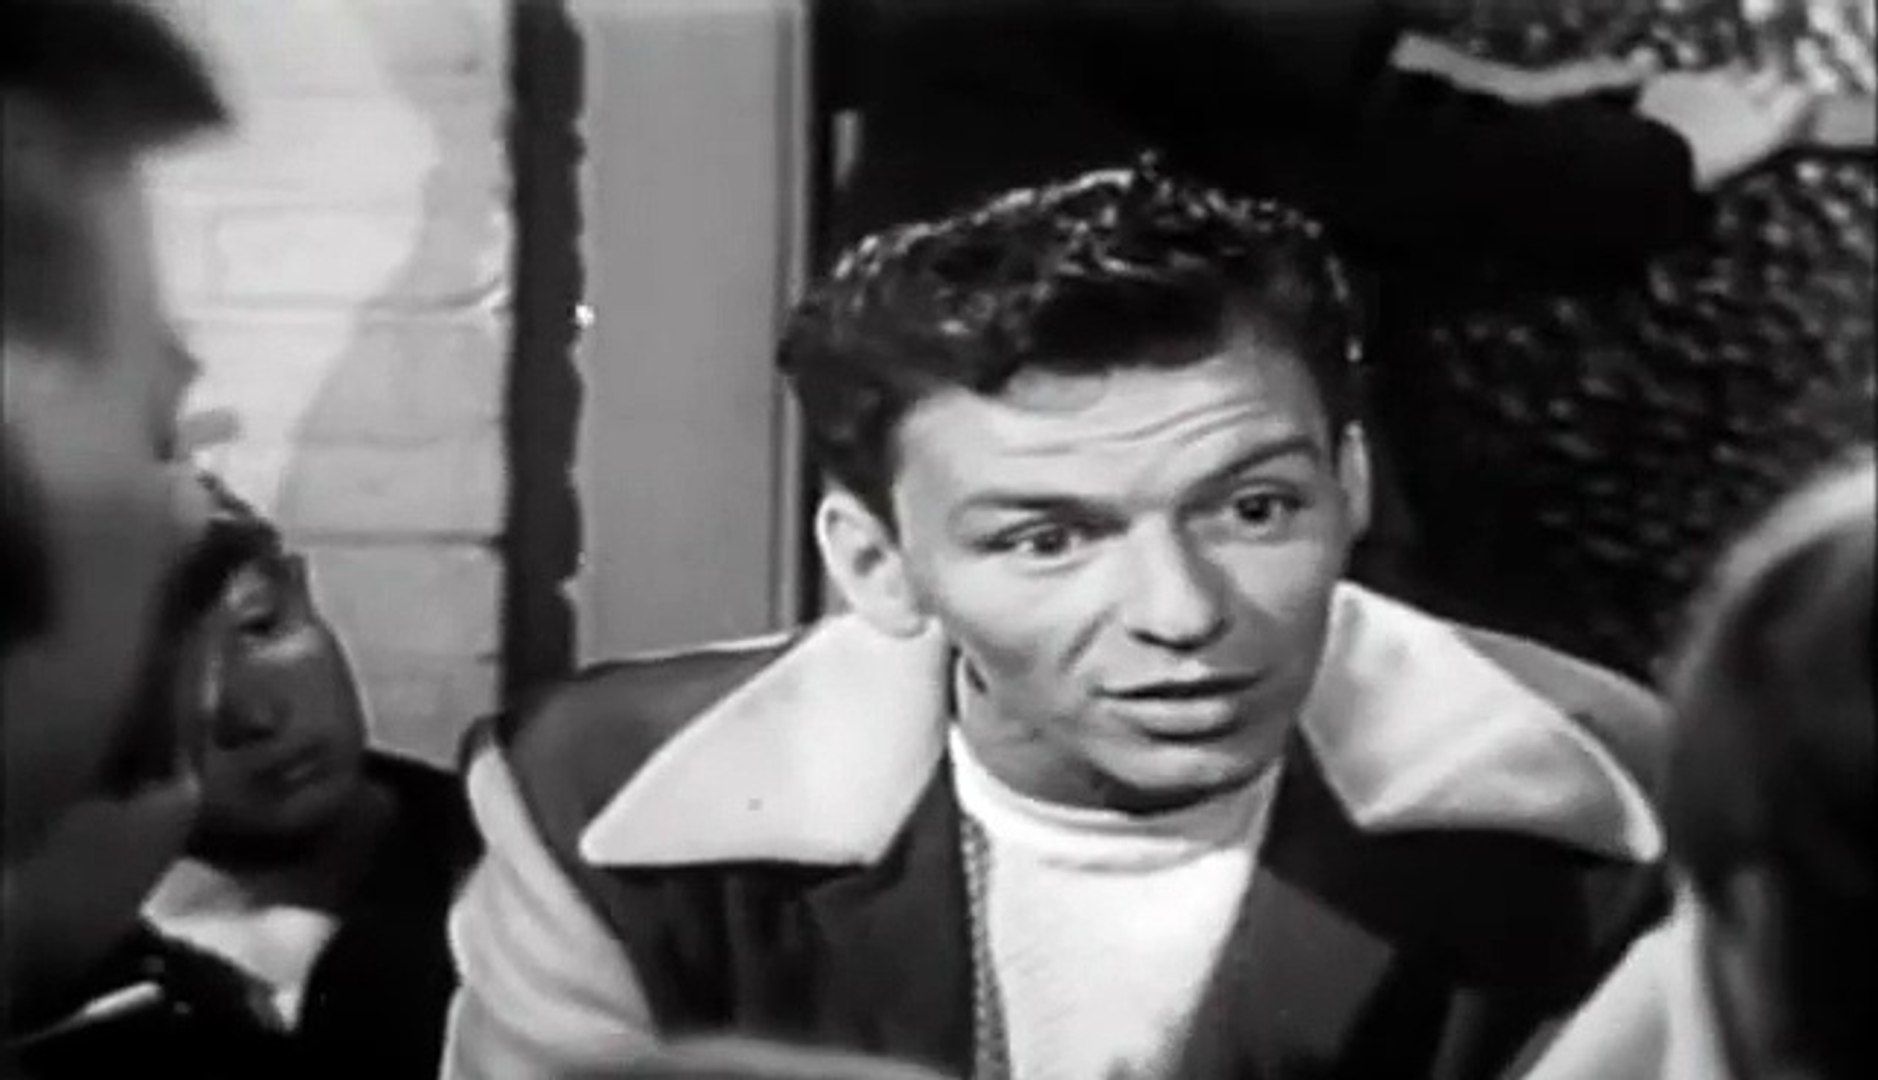 The House I Live In (1945) - Frank Sinatra - Short (Musical)